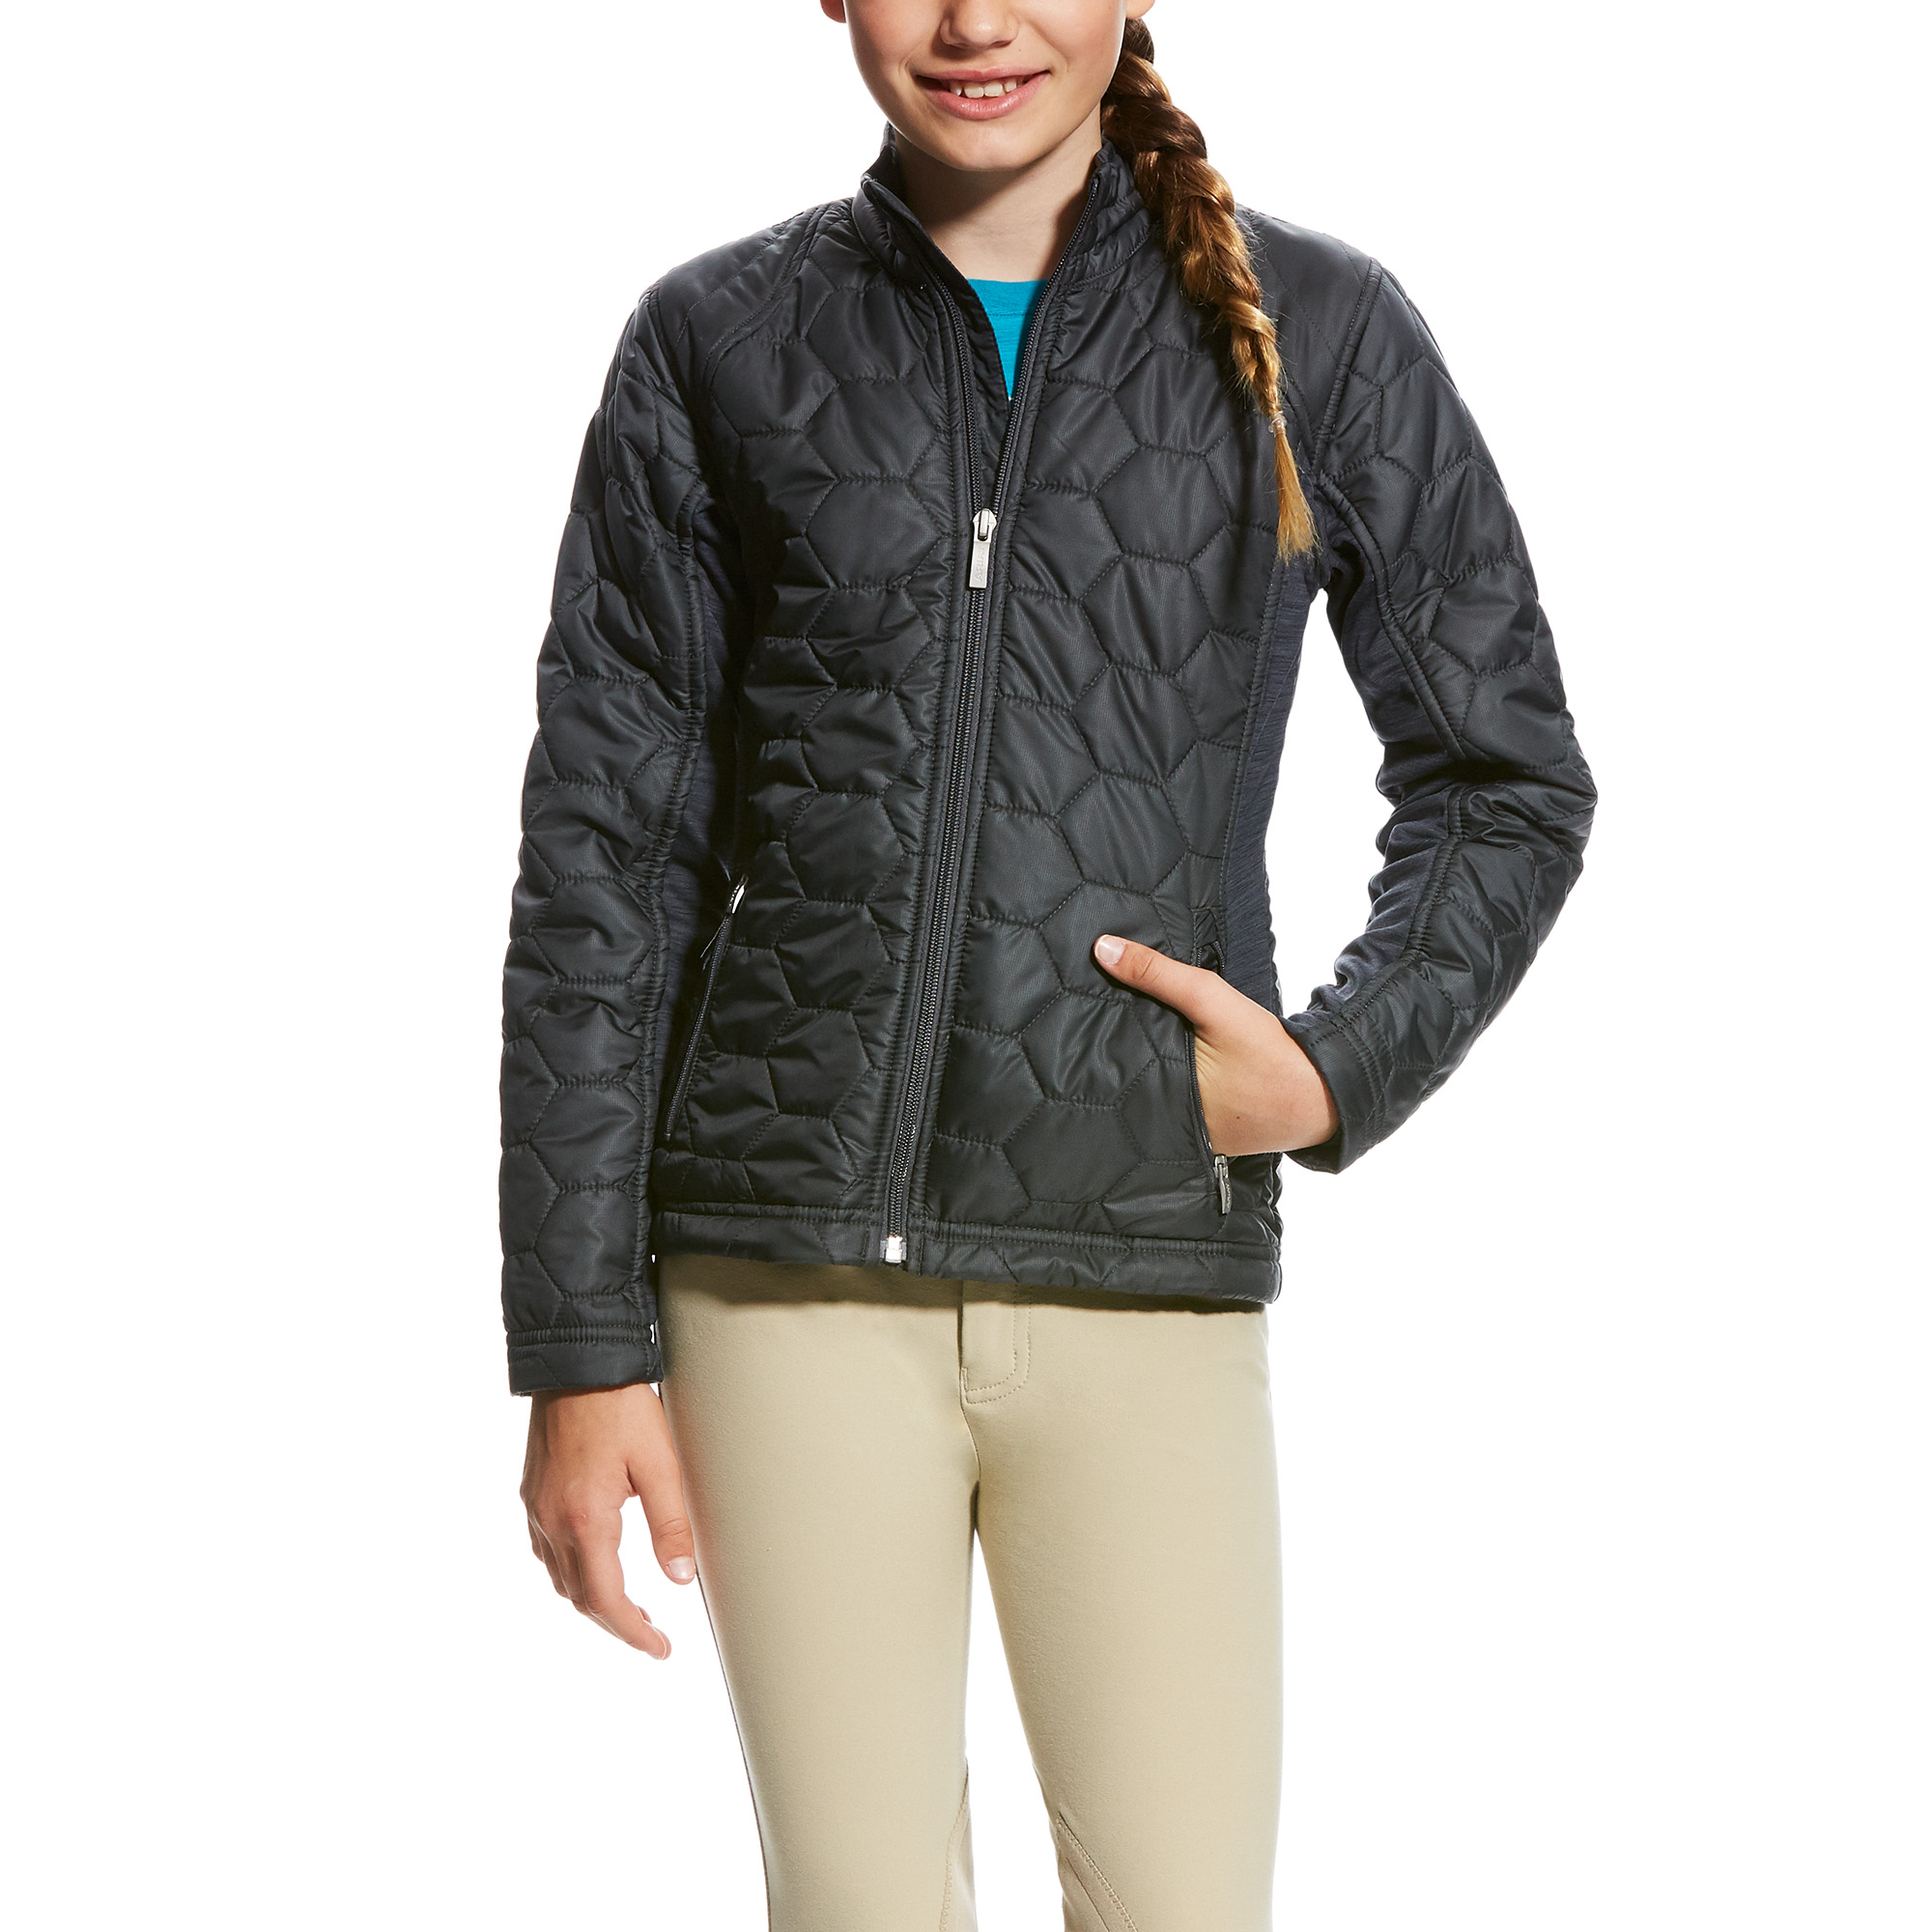 Volt Jacket from Ariat